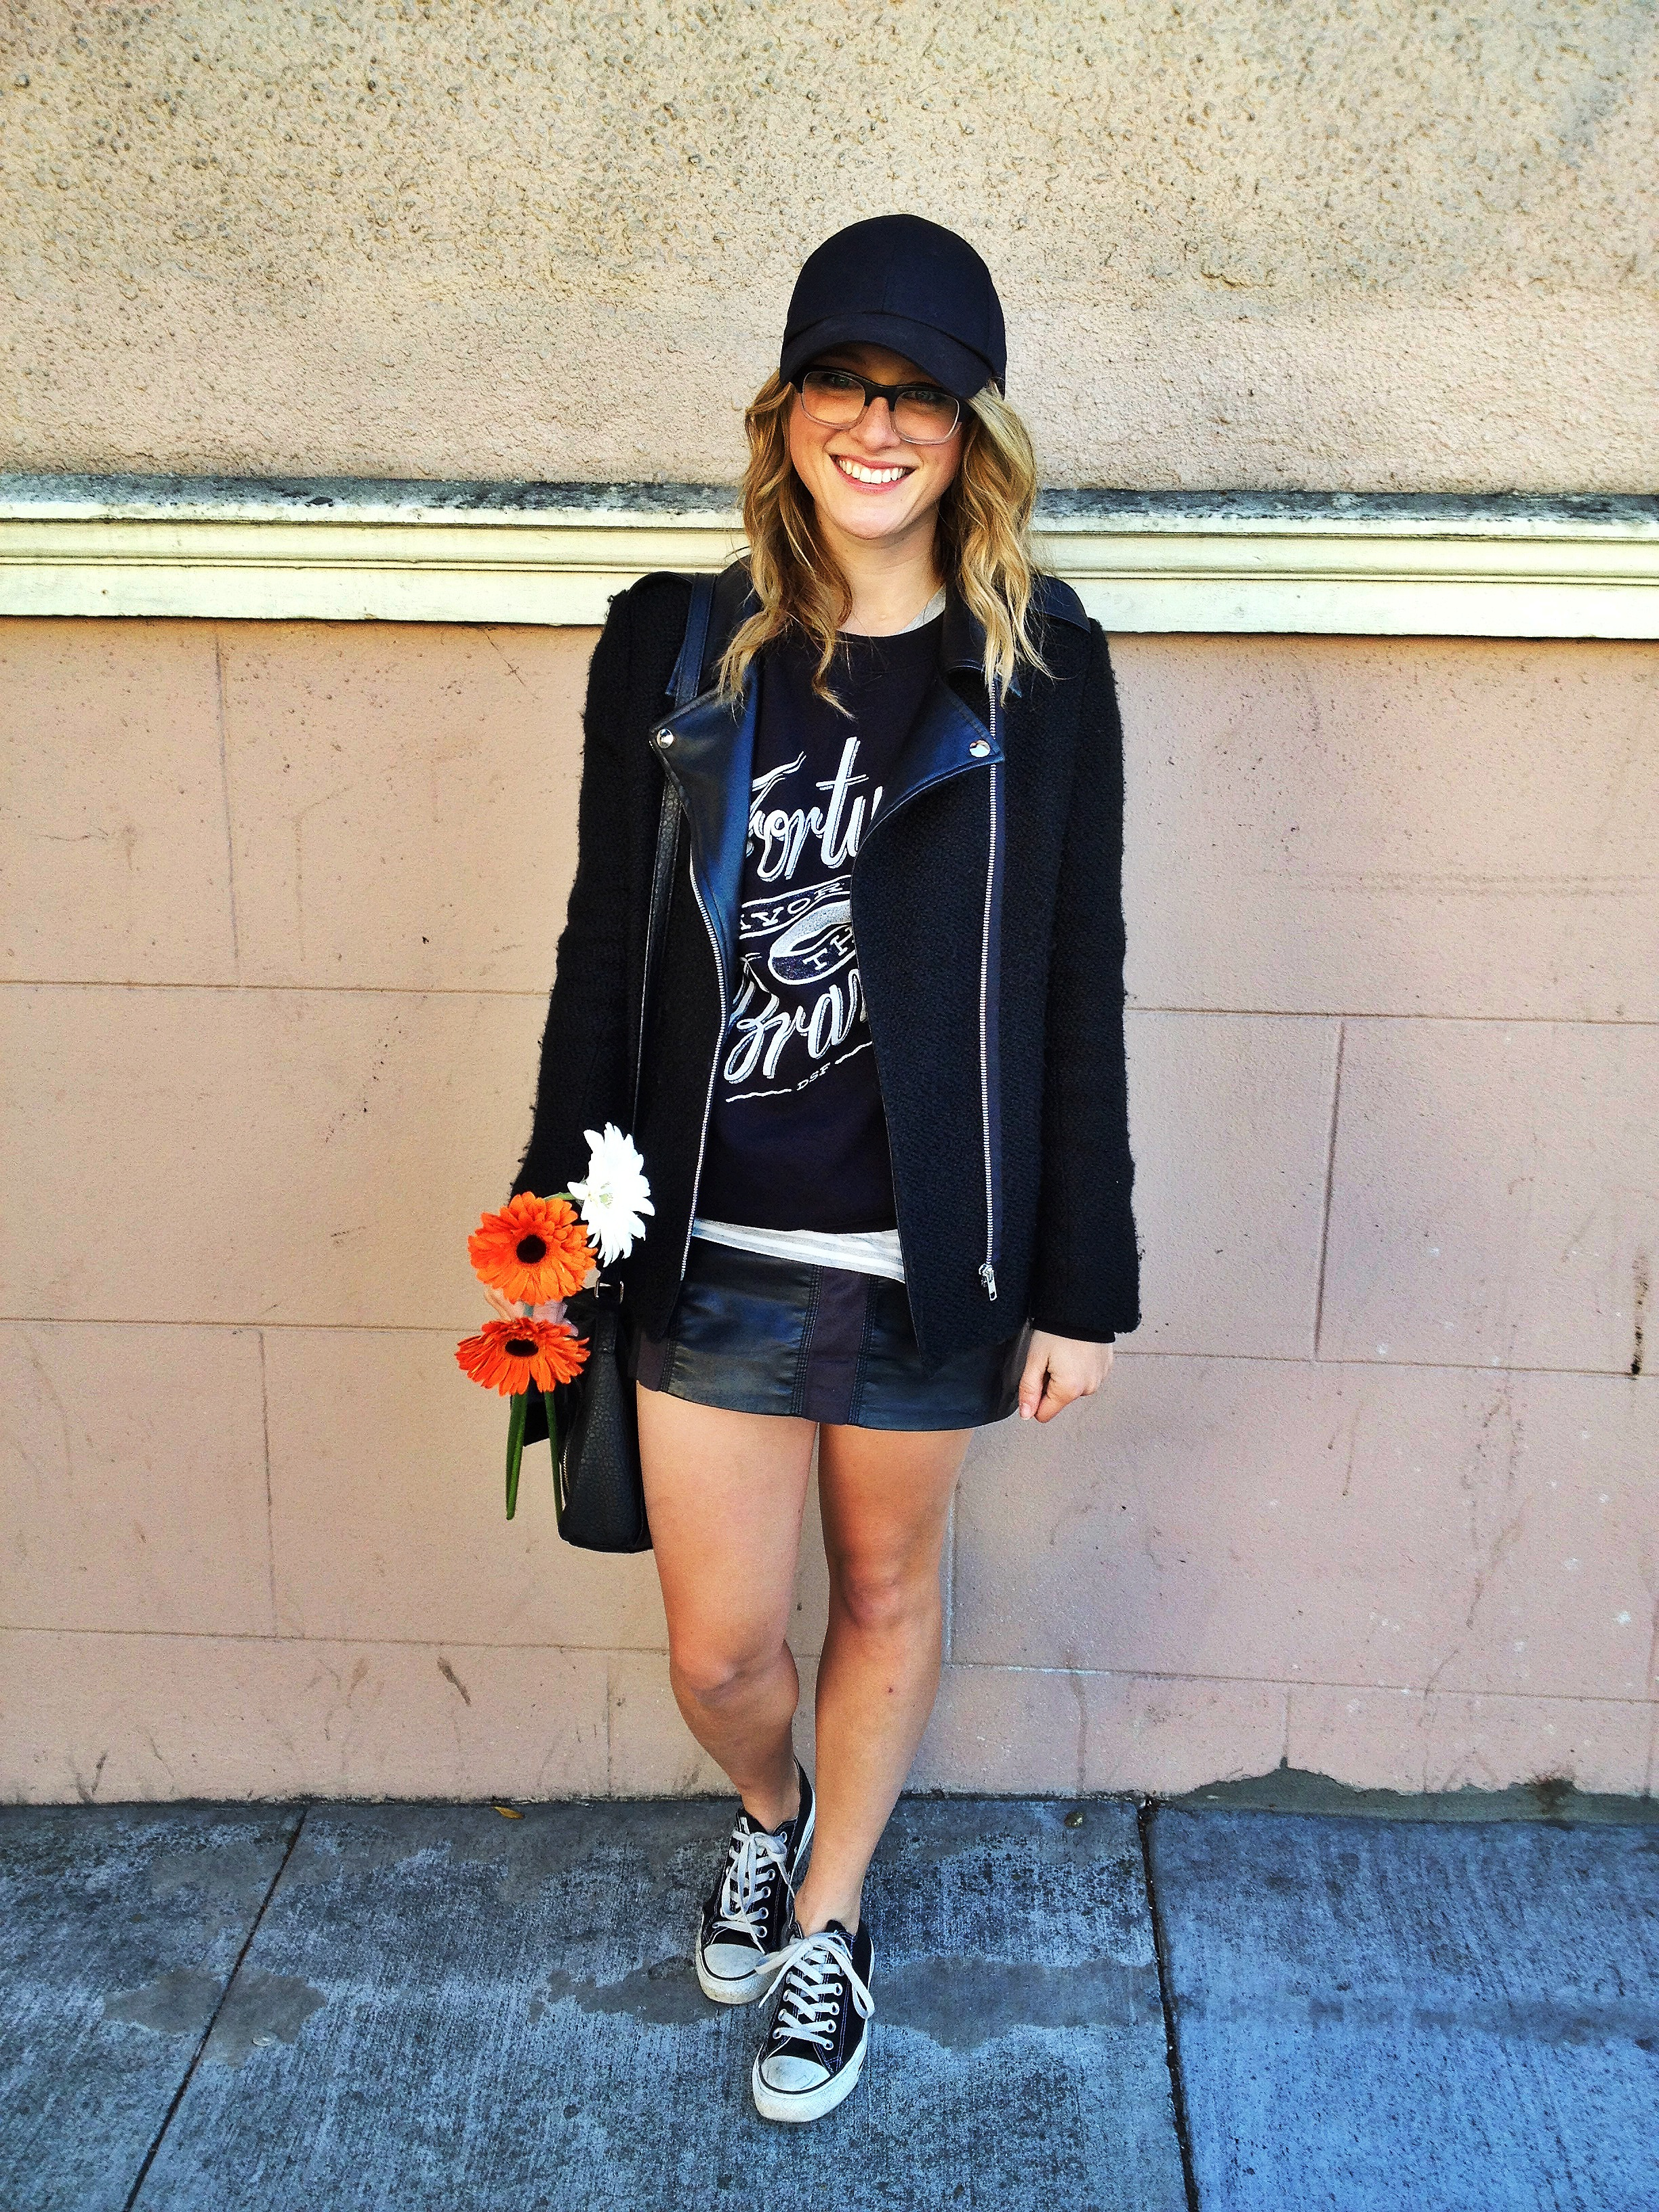 Skirt: H&M | Sweatshirt: DSF | Jacket: Crossroads Trading | Shoes: Converse | Hat: H&M